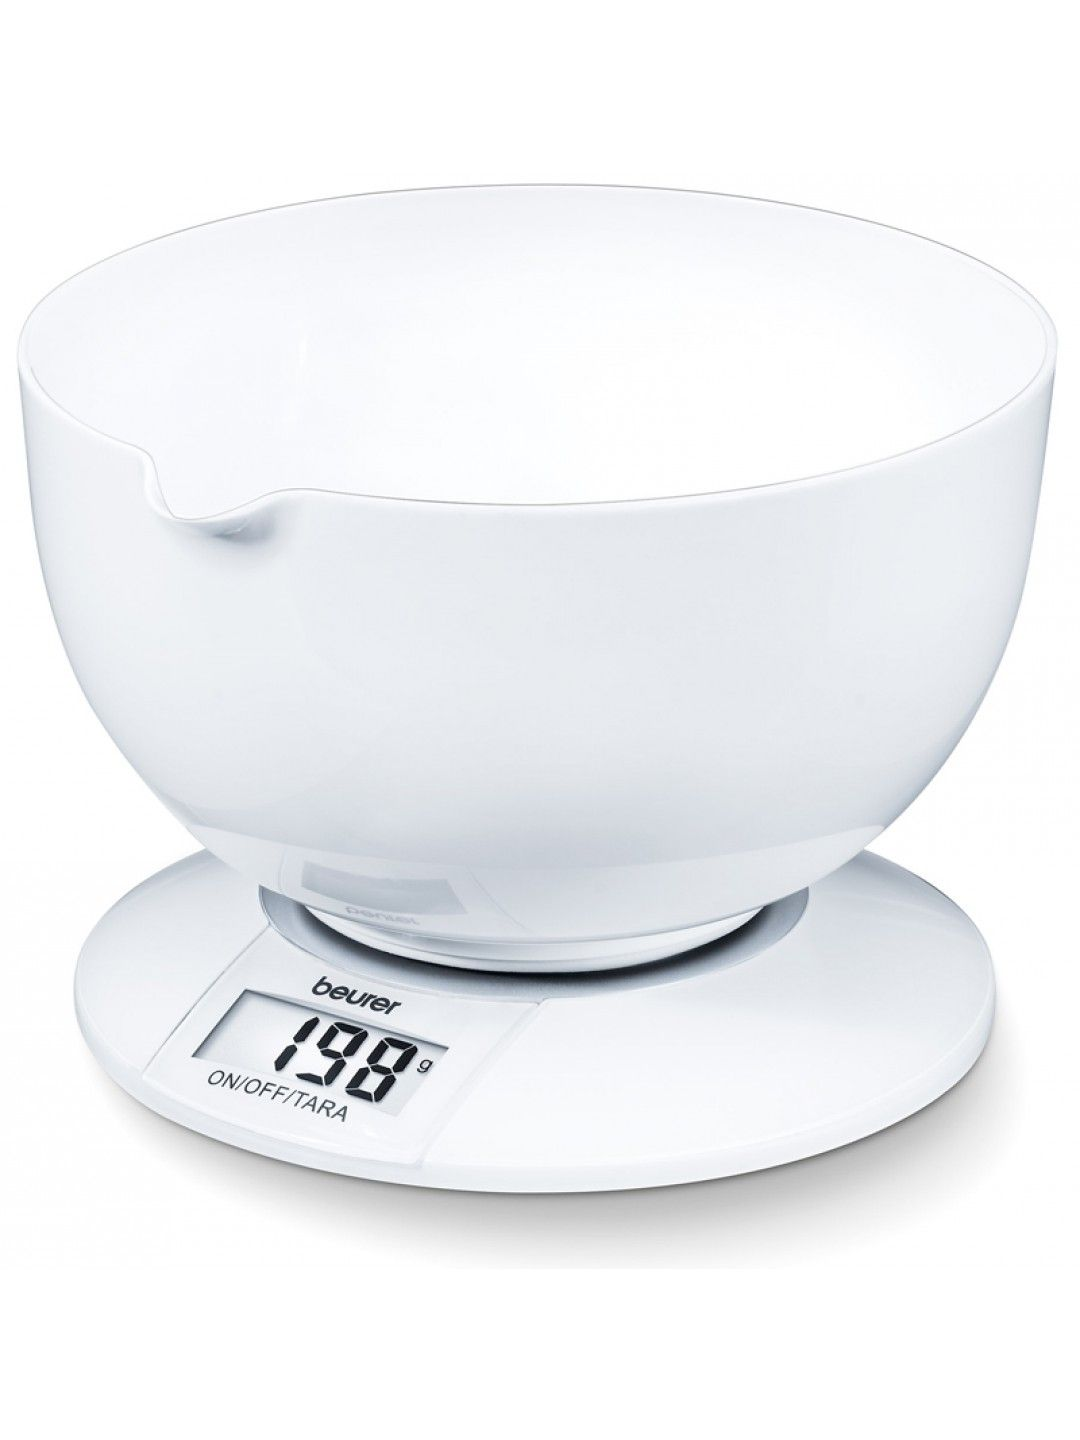 Beurer Simple White Weighing Scale - Online Shopping for Beurer ...